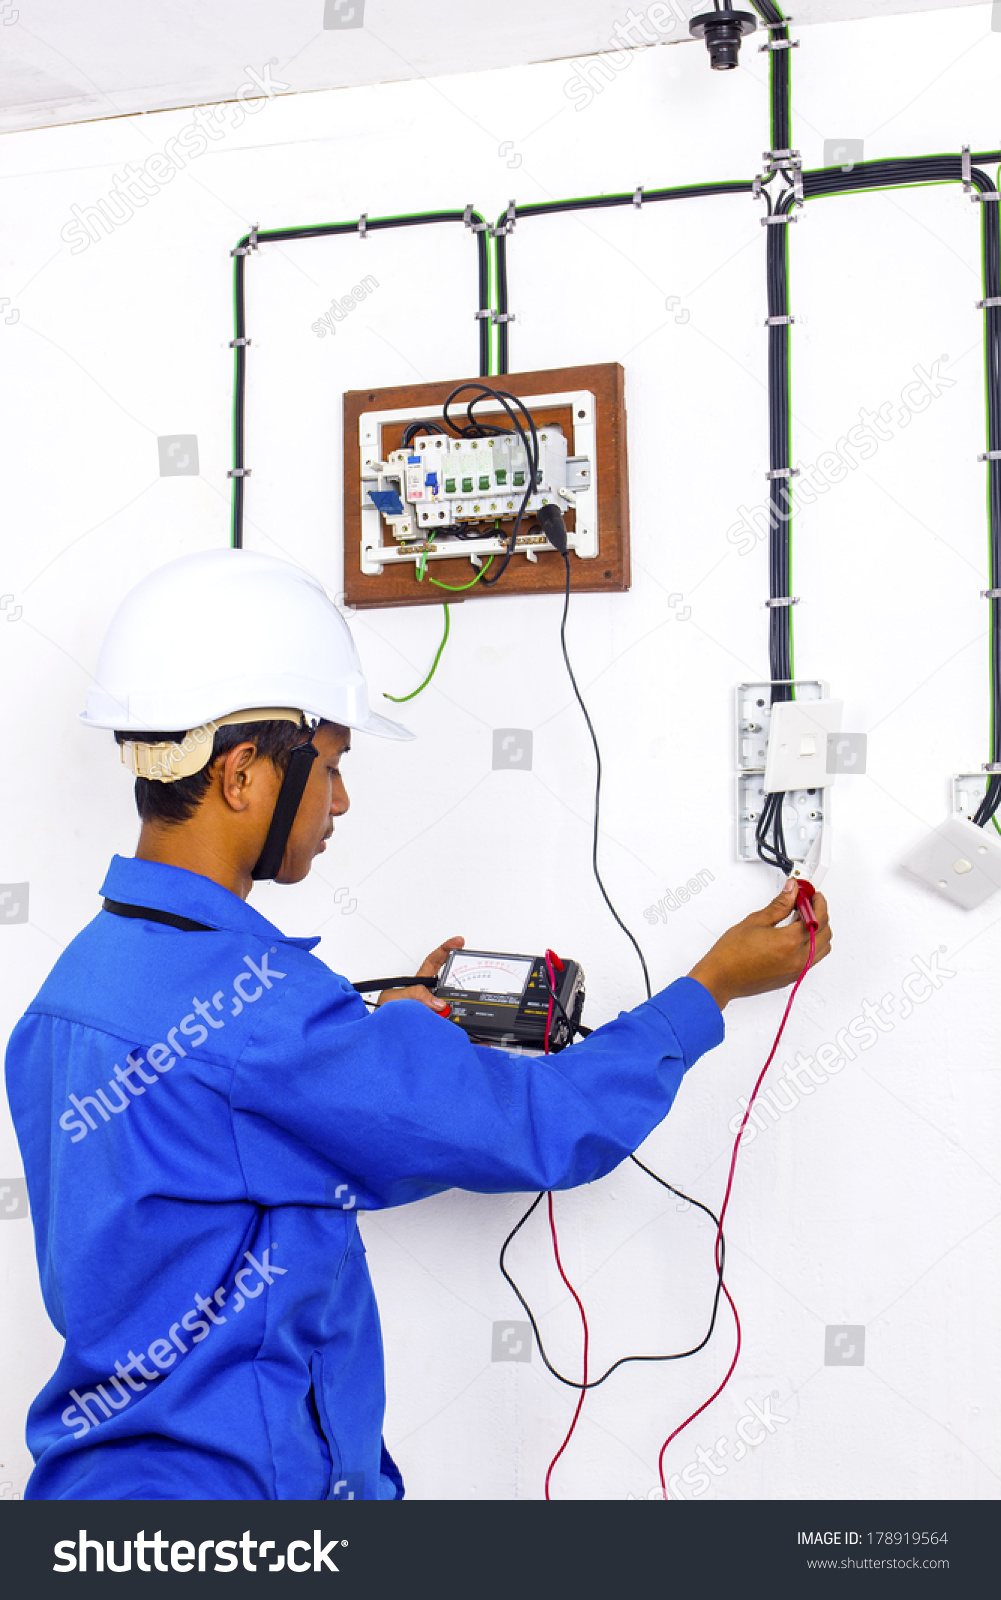 hight resolution of wire man during testing at surface wiring